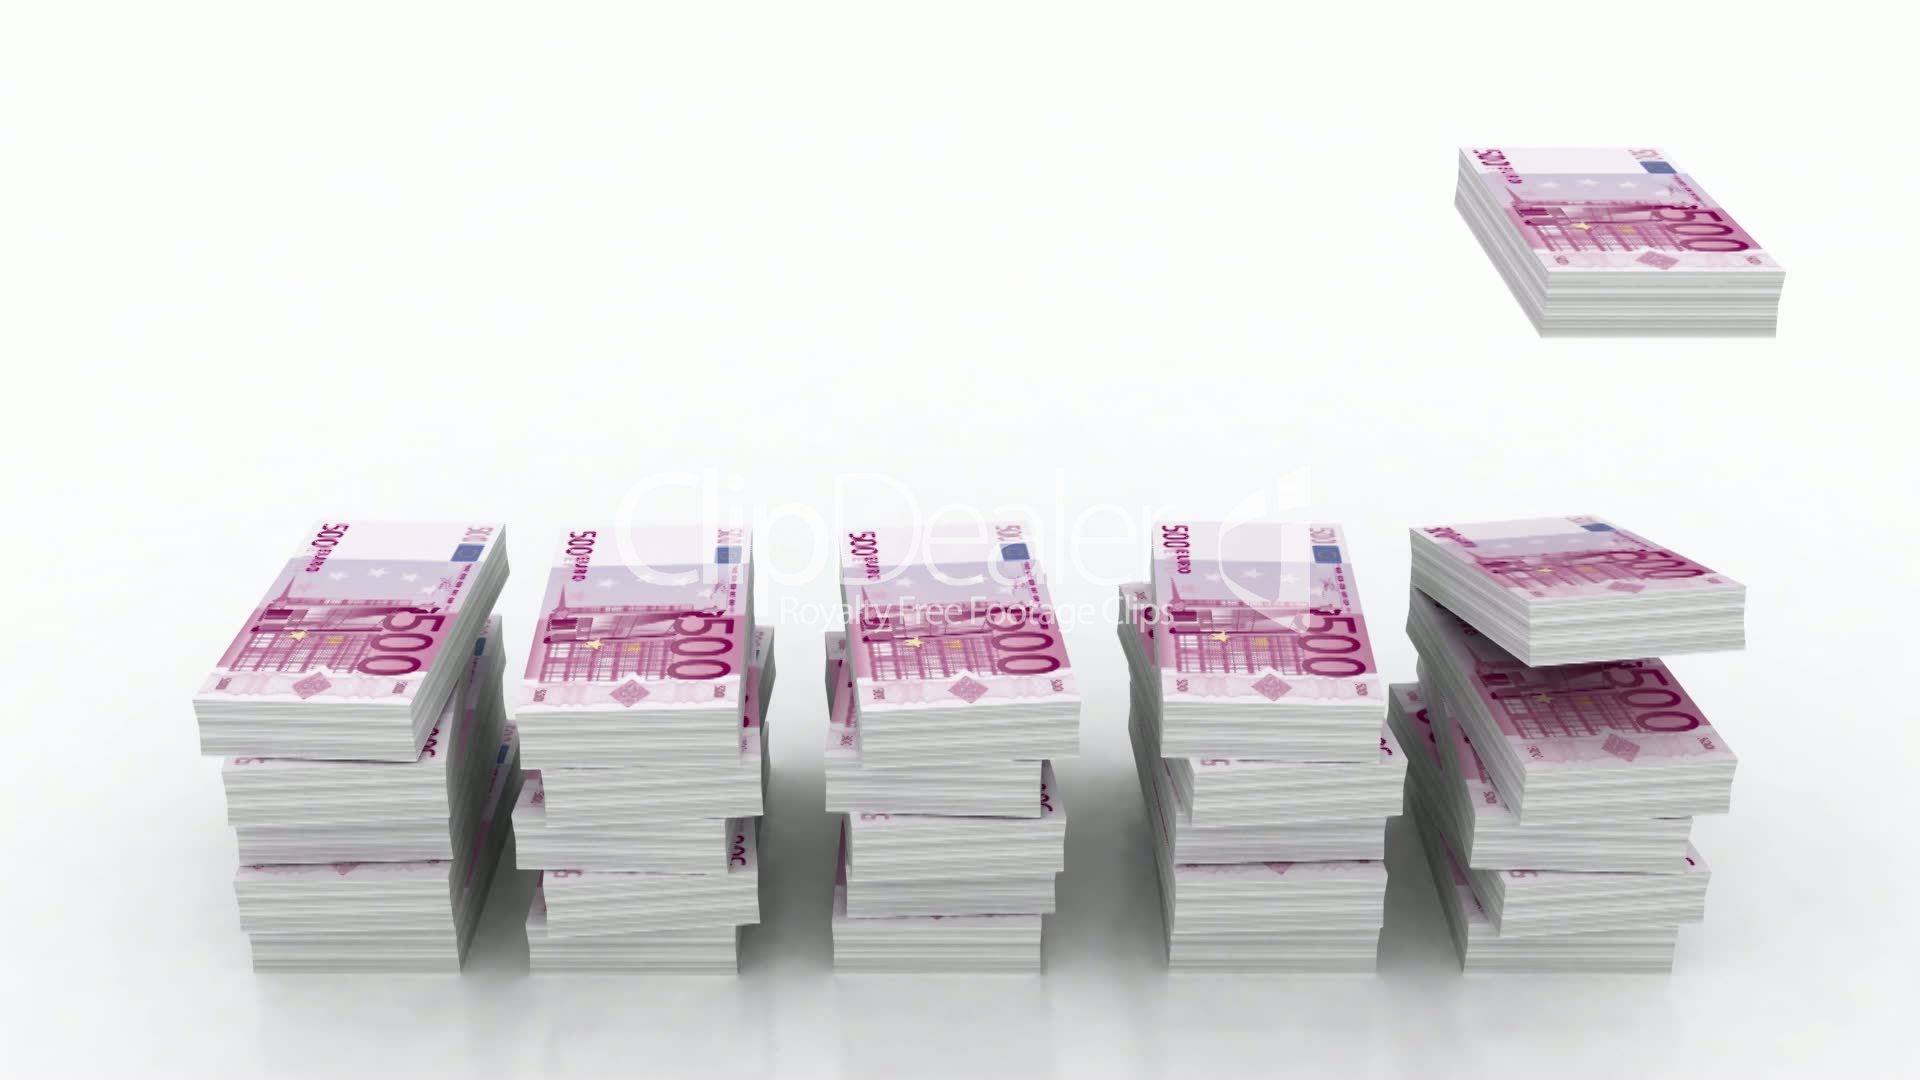 Falling stacks of 500 Euro currency: Royalty-free video